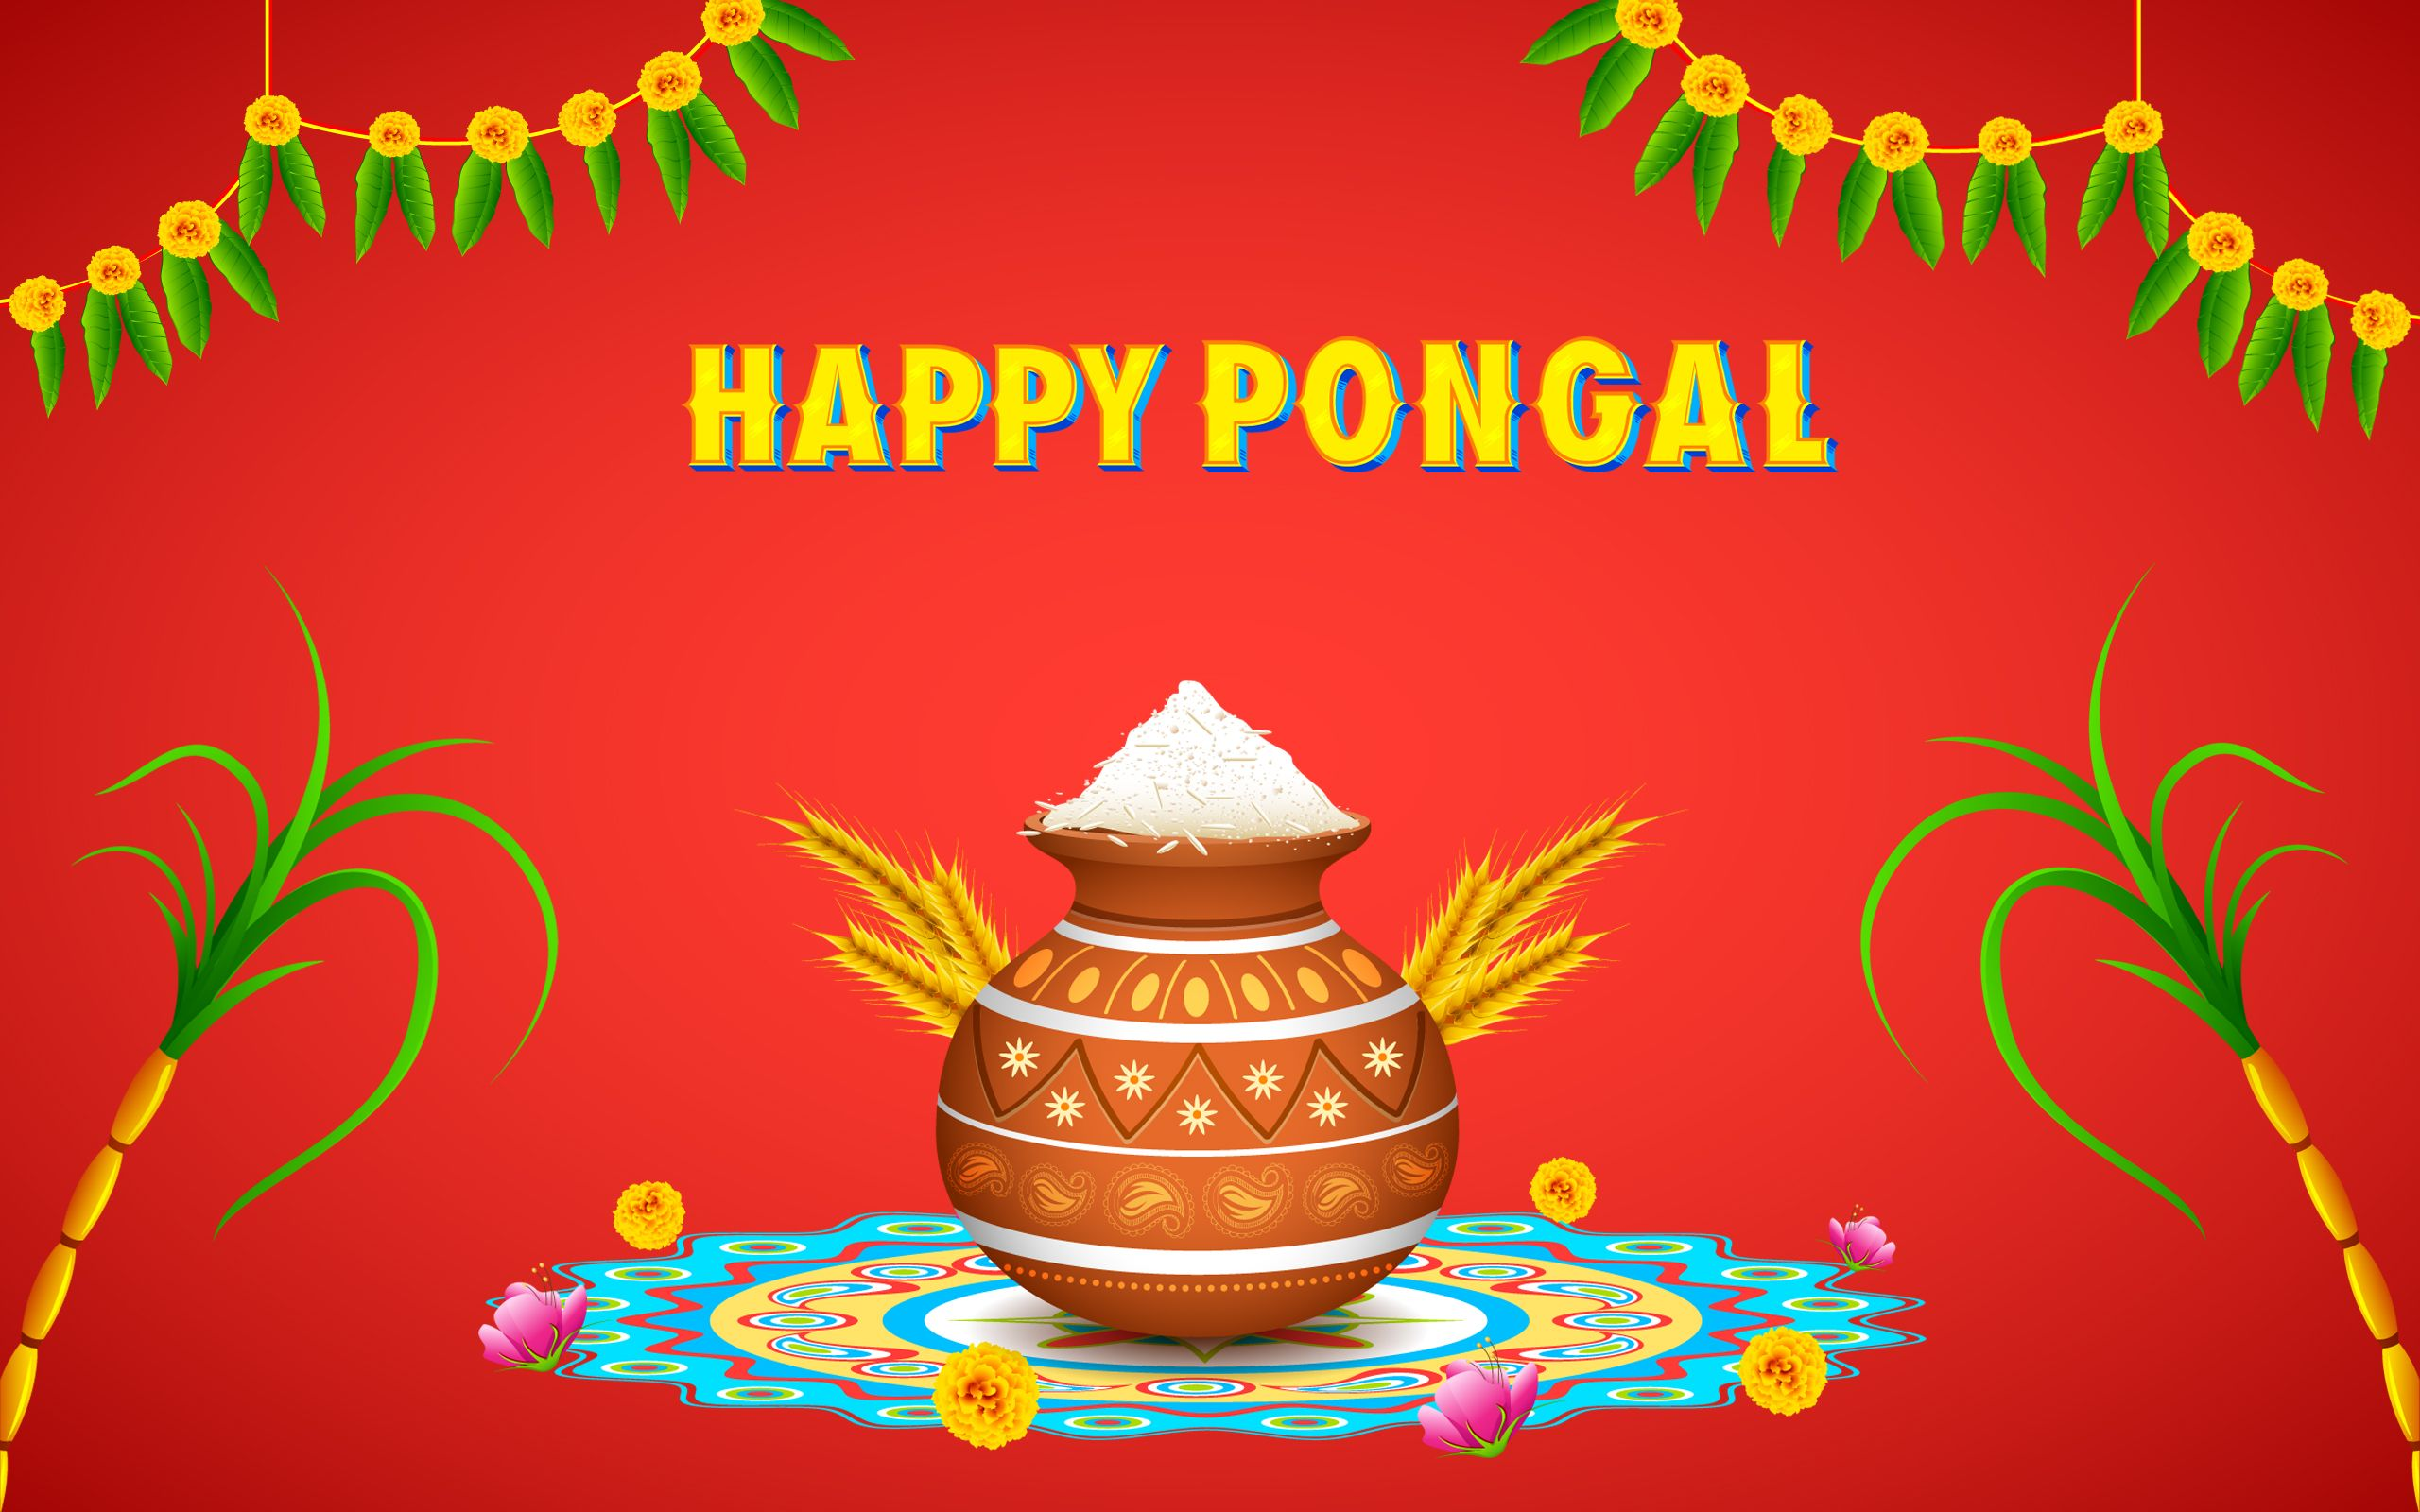 Happy pongal images greetings hd wallpaper dp download places happy pongal images greetings hd wallpaper dp download m4hsunfo